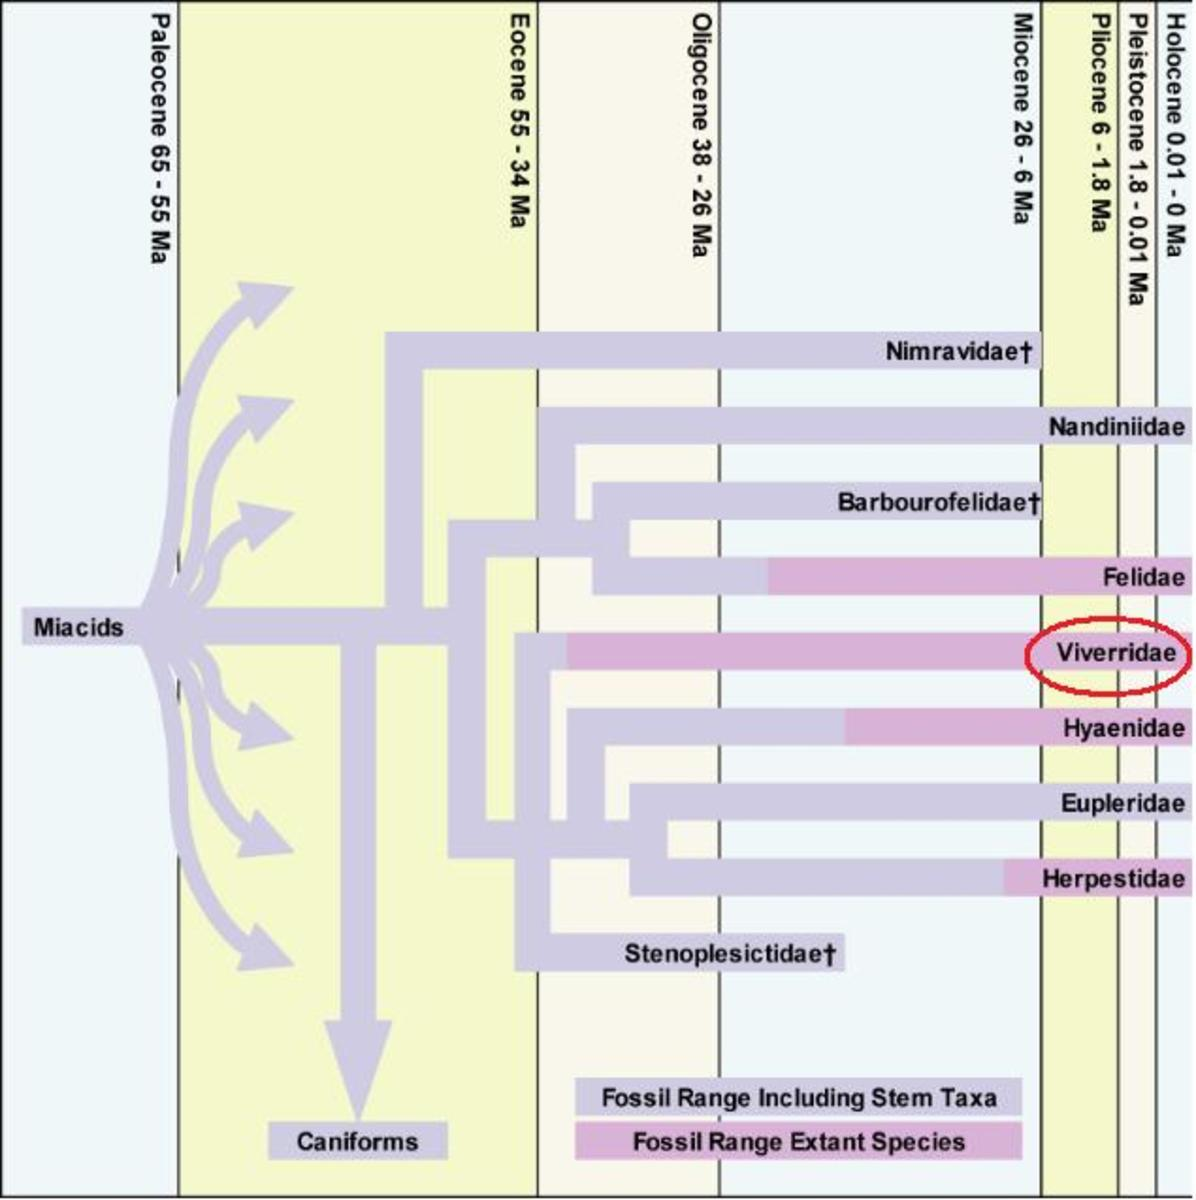 Map showing the evolutionary path of Carnivora